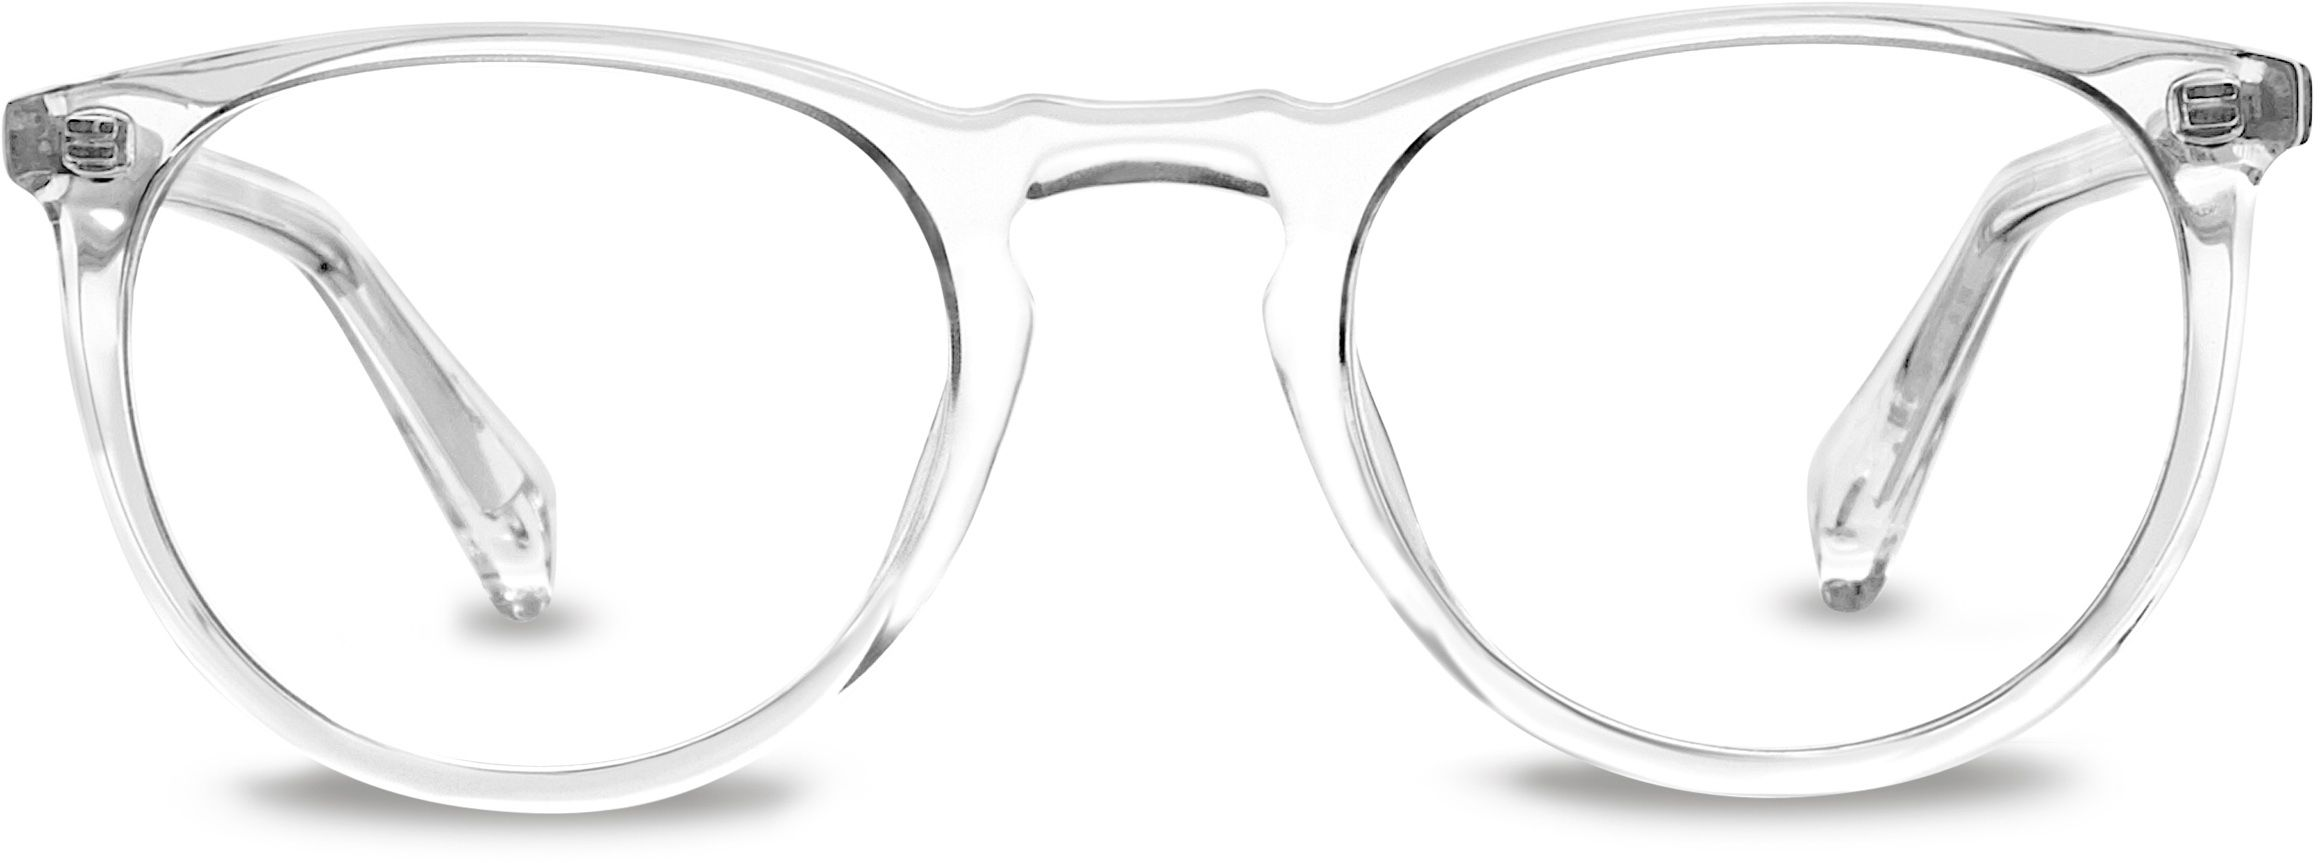 a29a44695d5 Haskell Eyeglasses in Crystal for Women